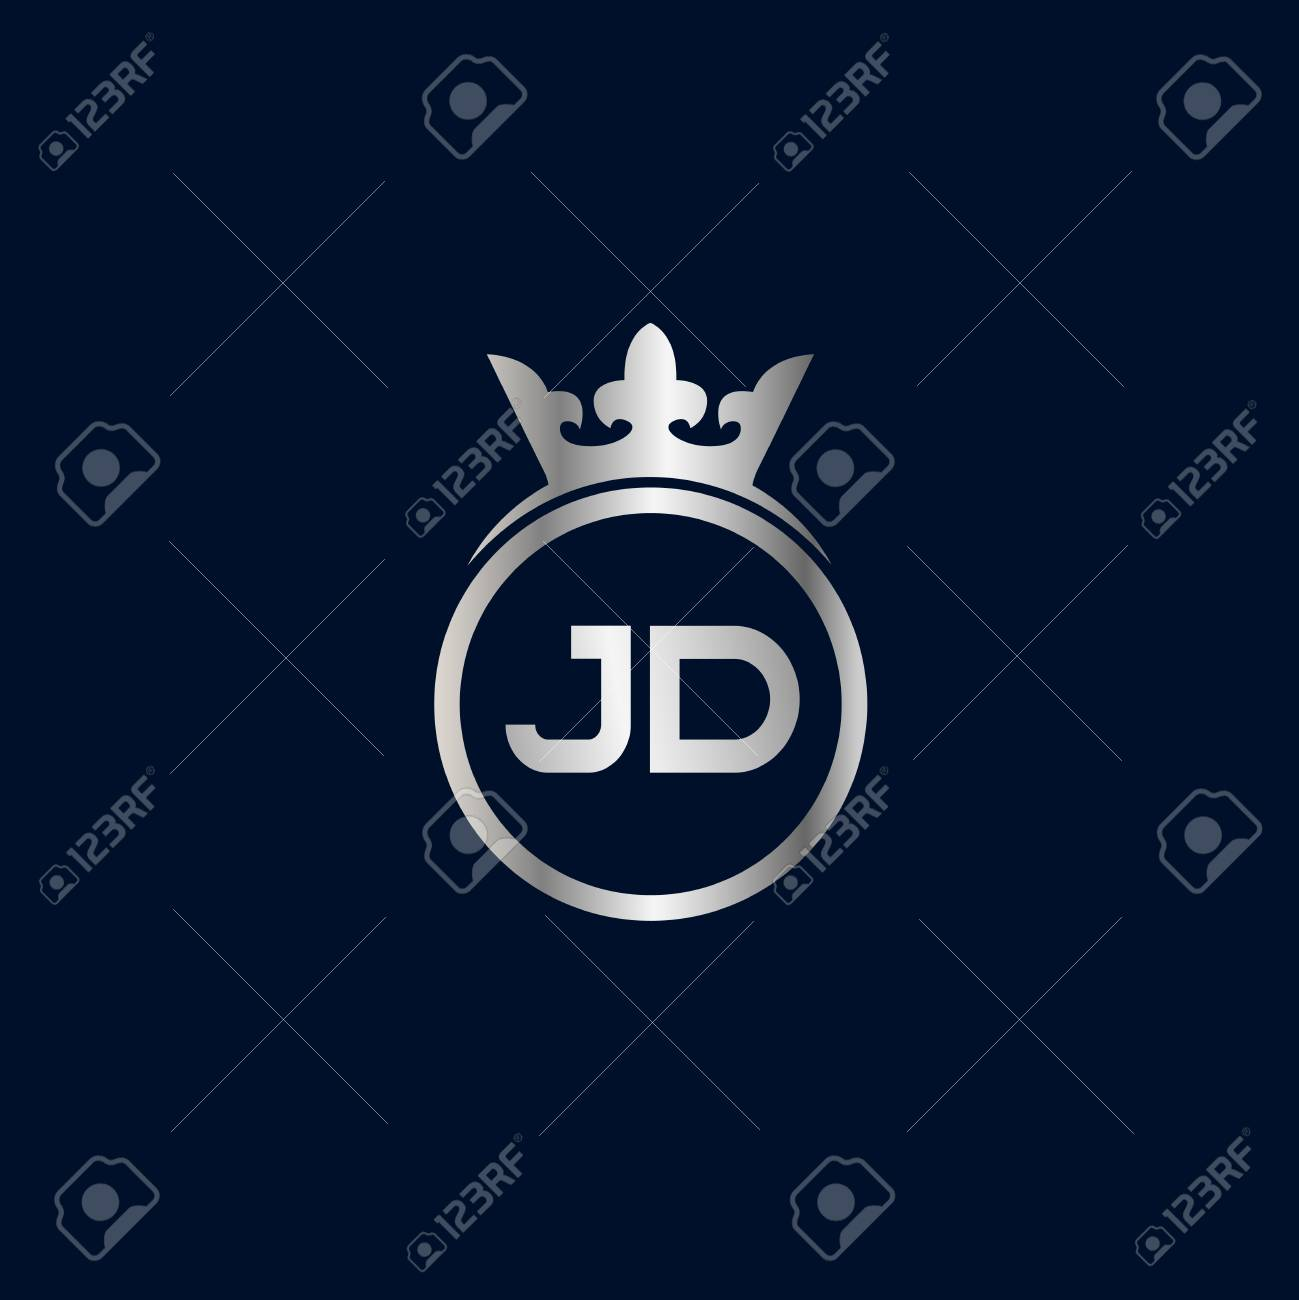 initial letter jd logo template design royalty free cliparts vectors and stock illustration image 109594781 initial letter jd logo template design